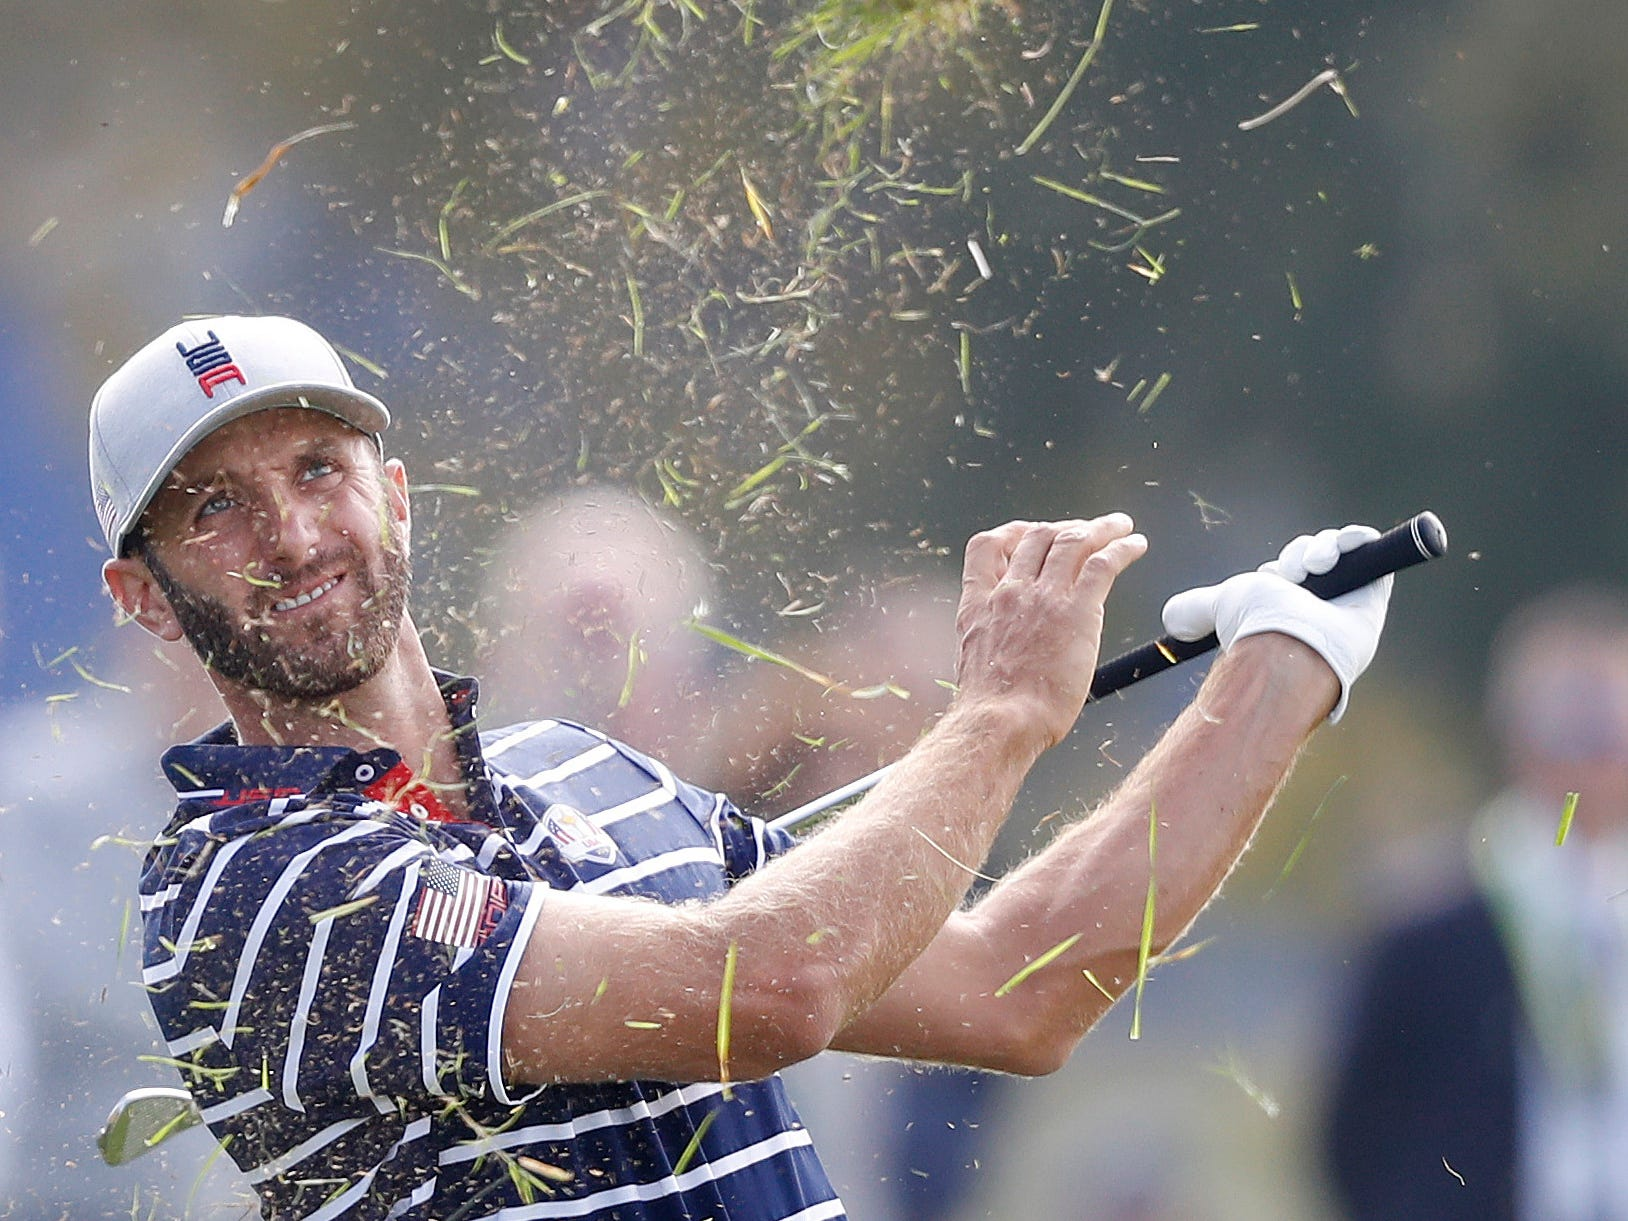 USA's Dustin Johnson plays out of the rough during his fourball match on the opening day.